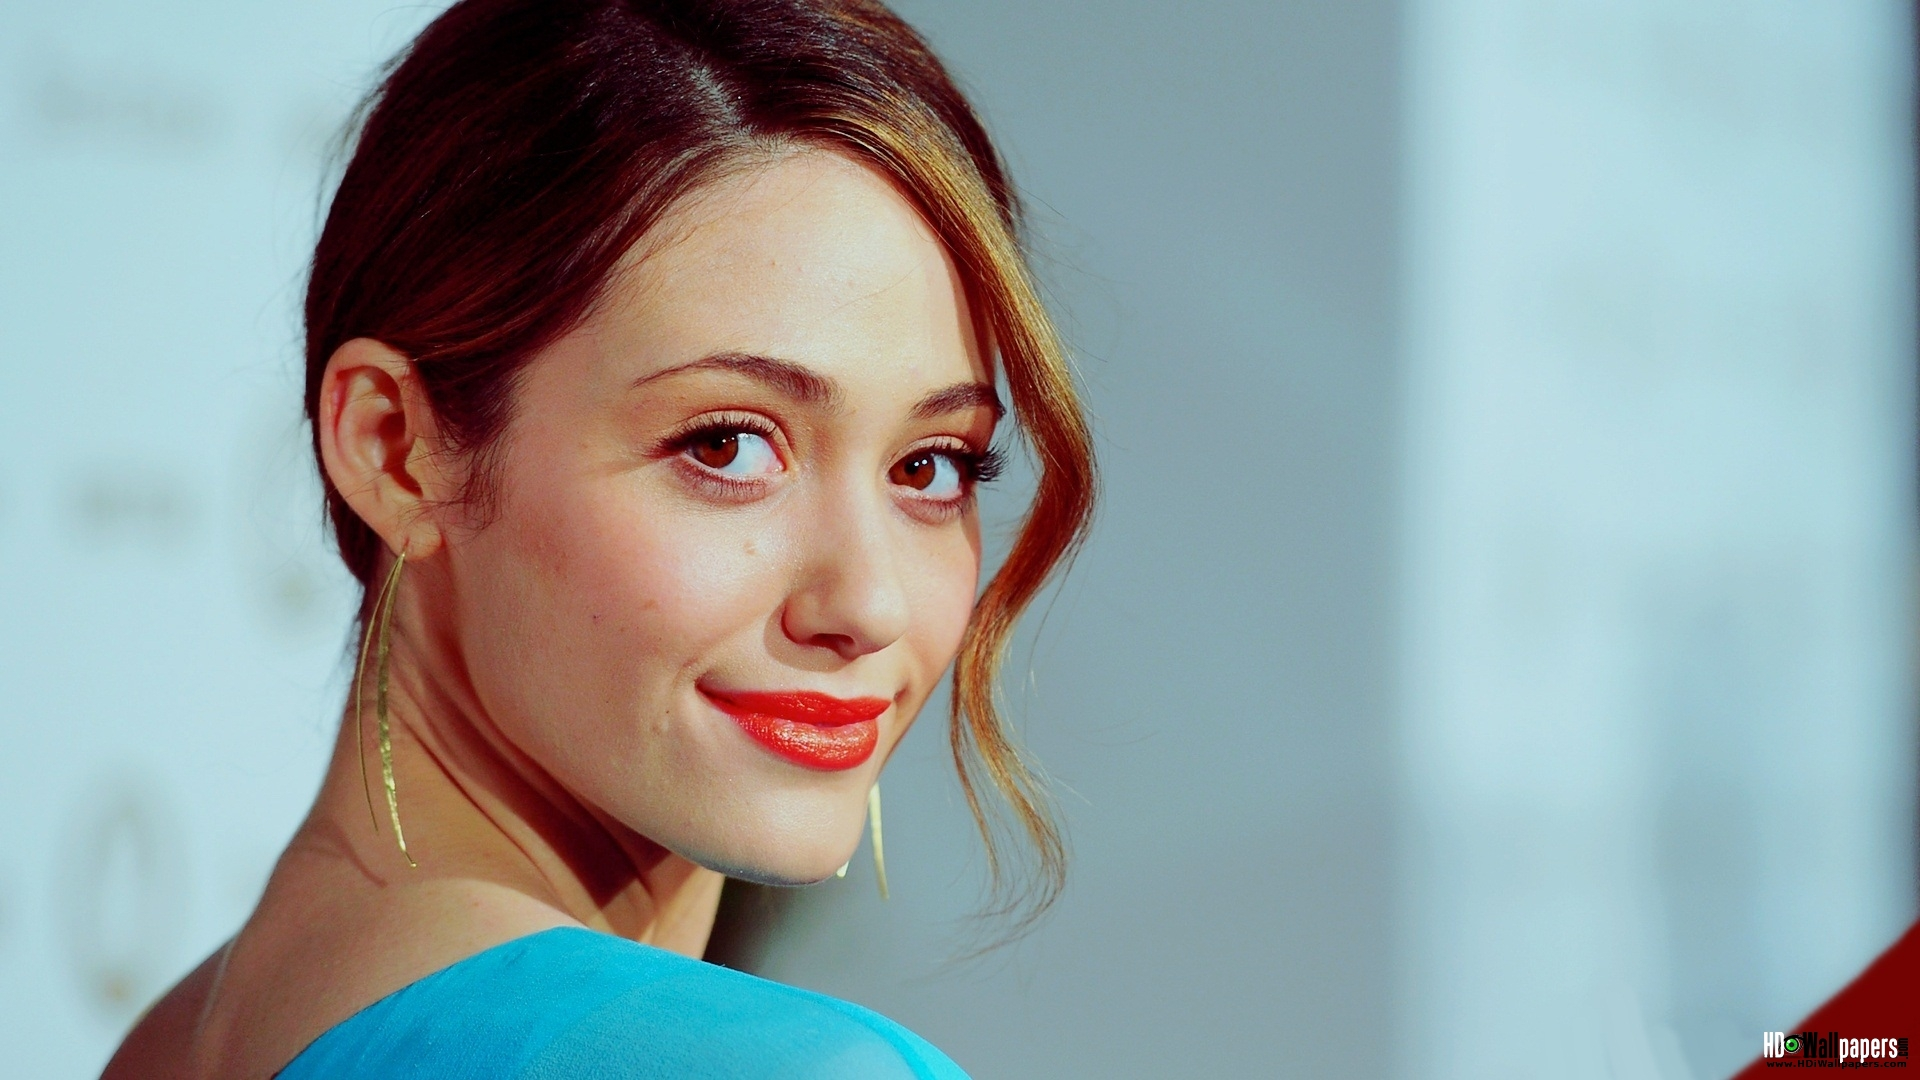 Emmy Rossum Hot Wallpapers HD Pictures and Images , 5 0 out of 5 based 1928